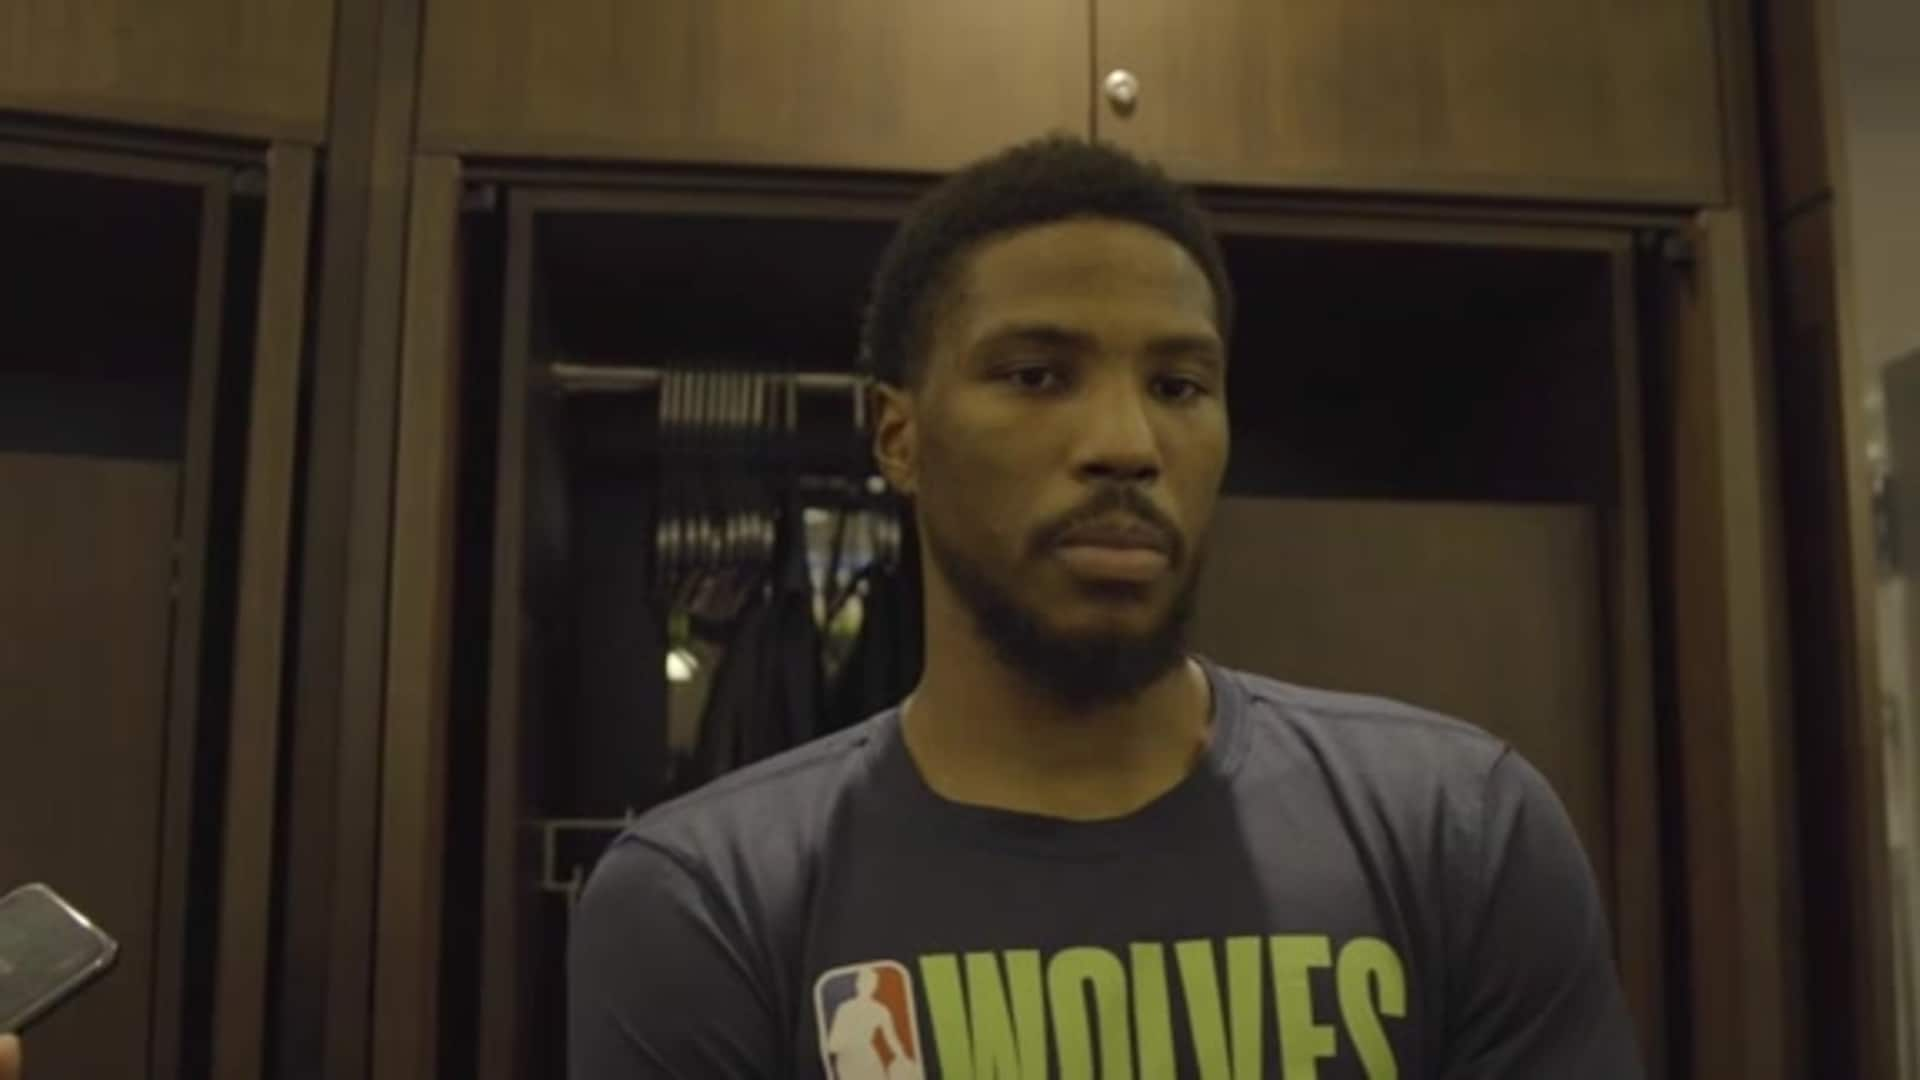 Timberwolves Guard Malik Beasley After Loss To Pelicans (3.8.20)